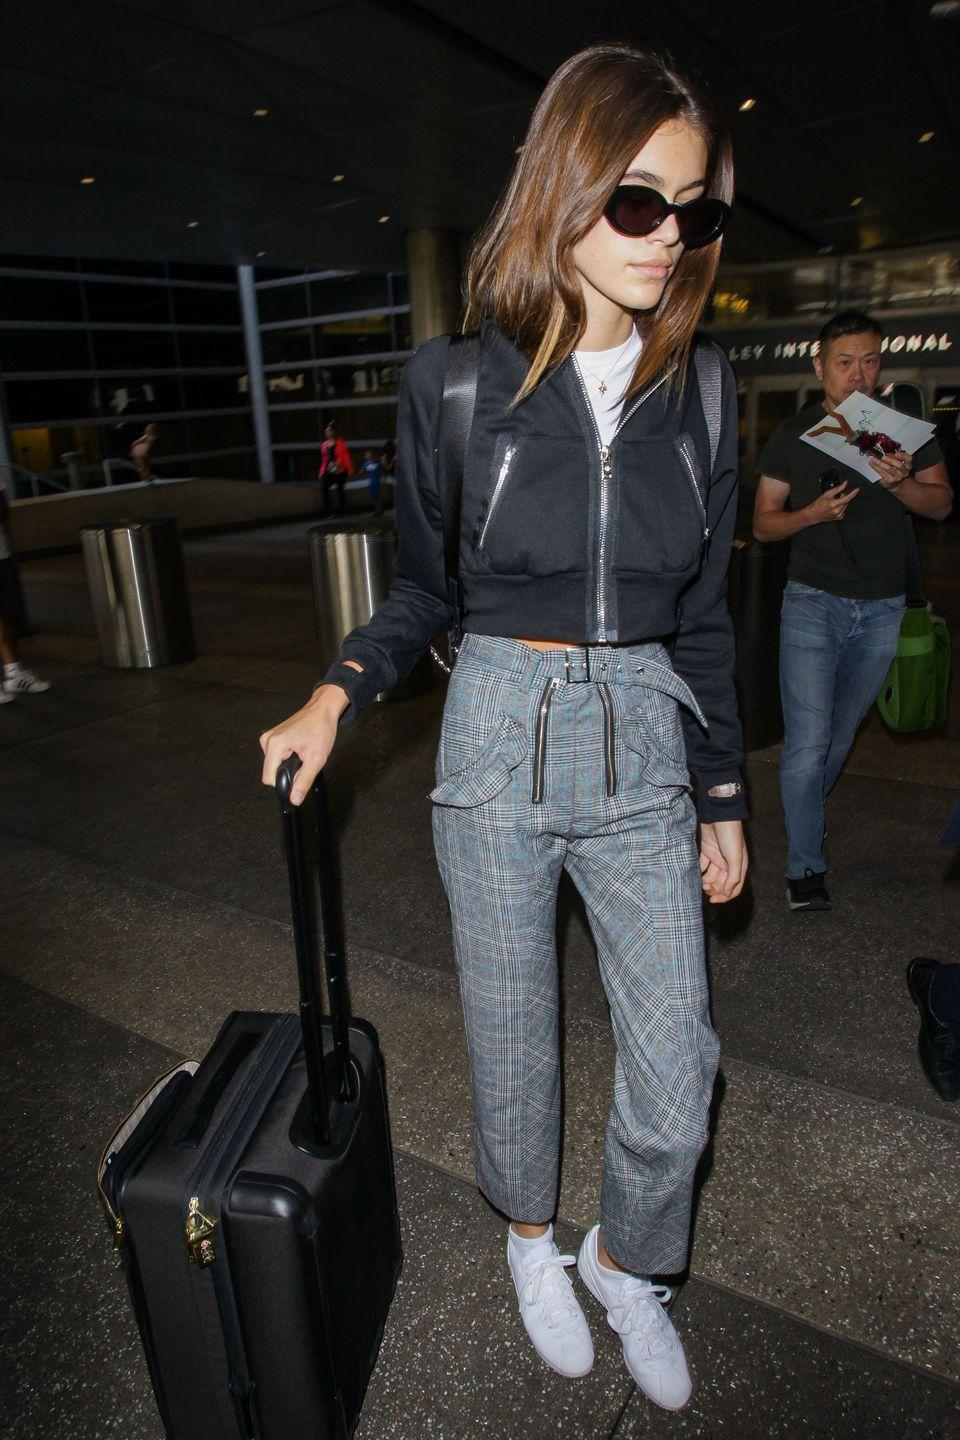 <p>The model was spotted wearing high-waisted checkered trousers and a black bomber jacket in LAX.</p>